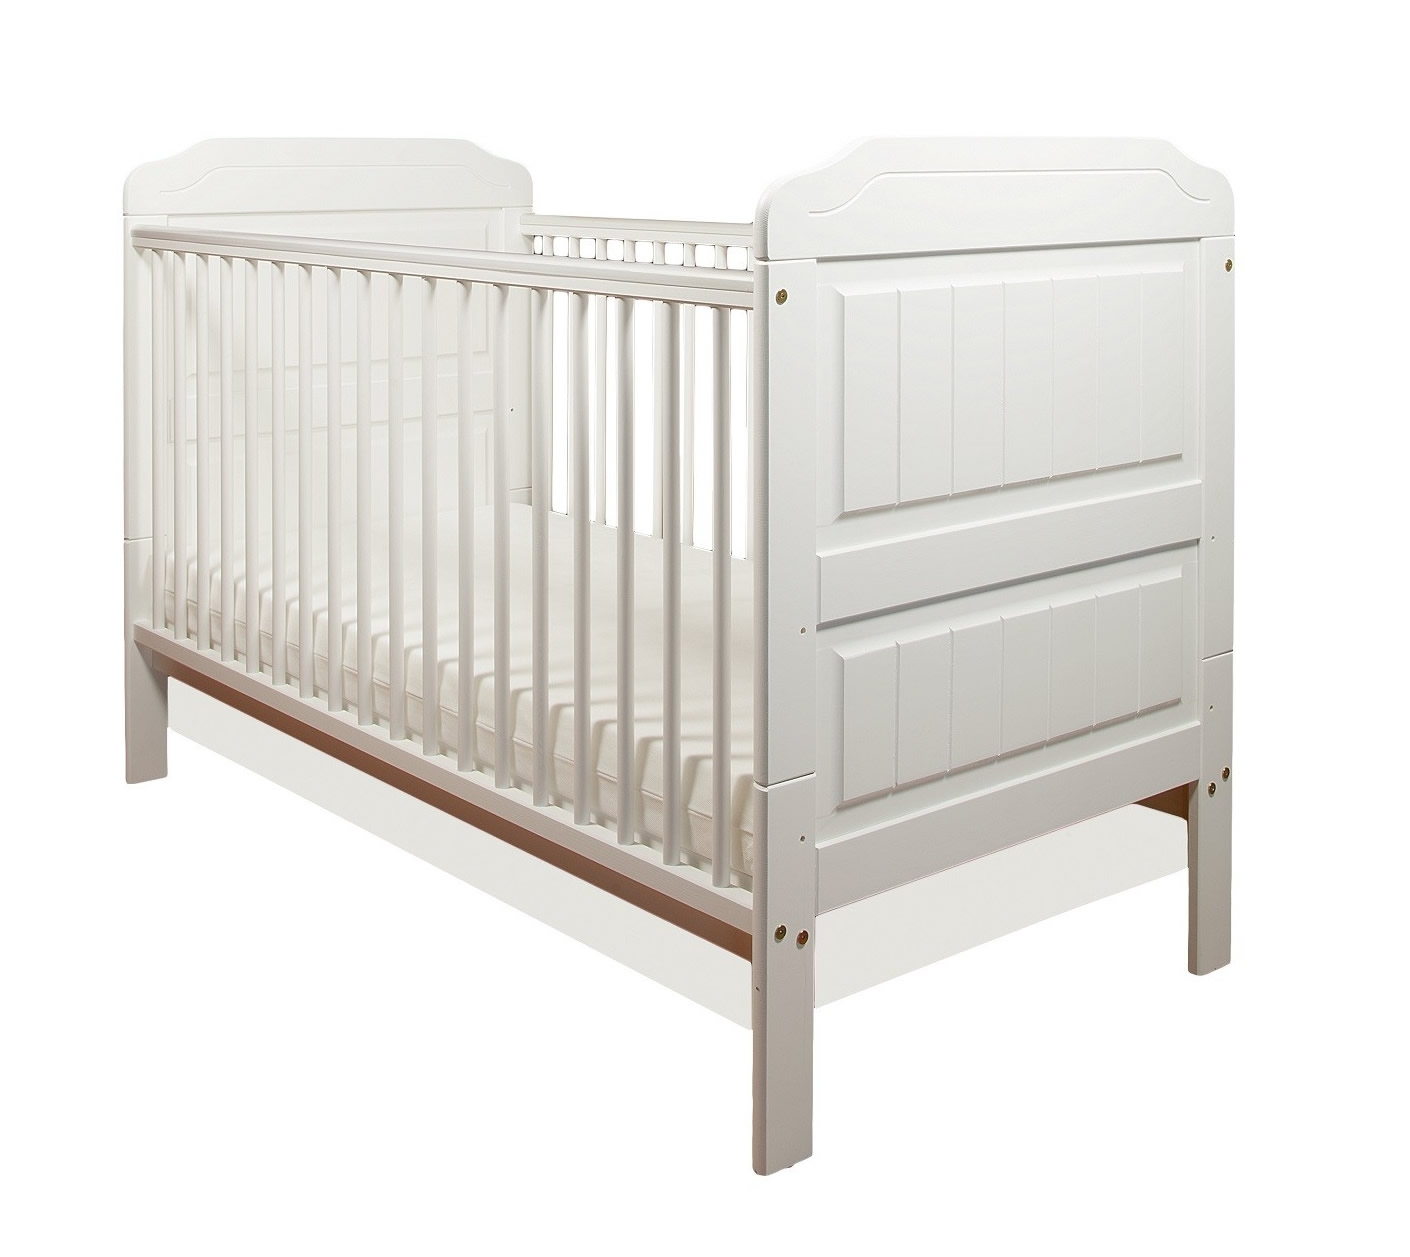 Kiddies Kingdom Furniture